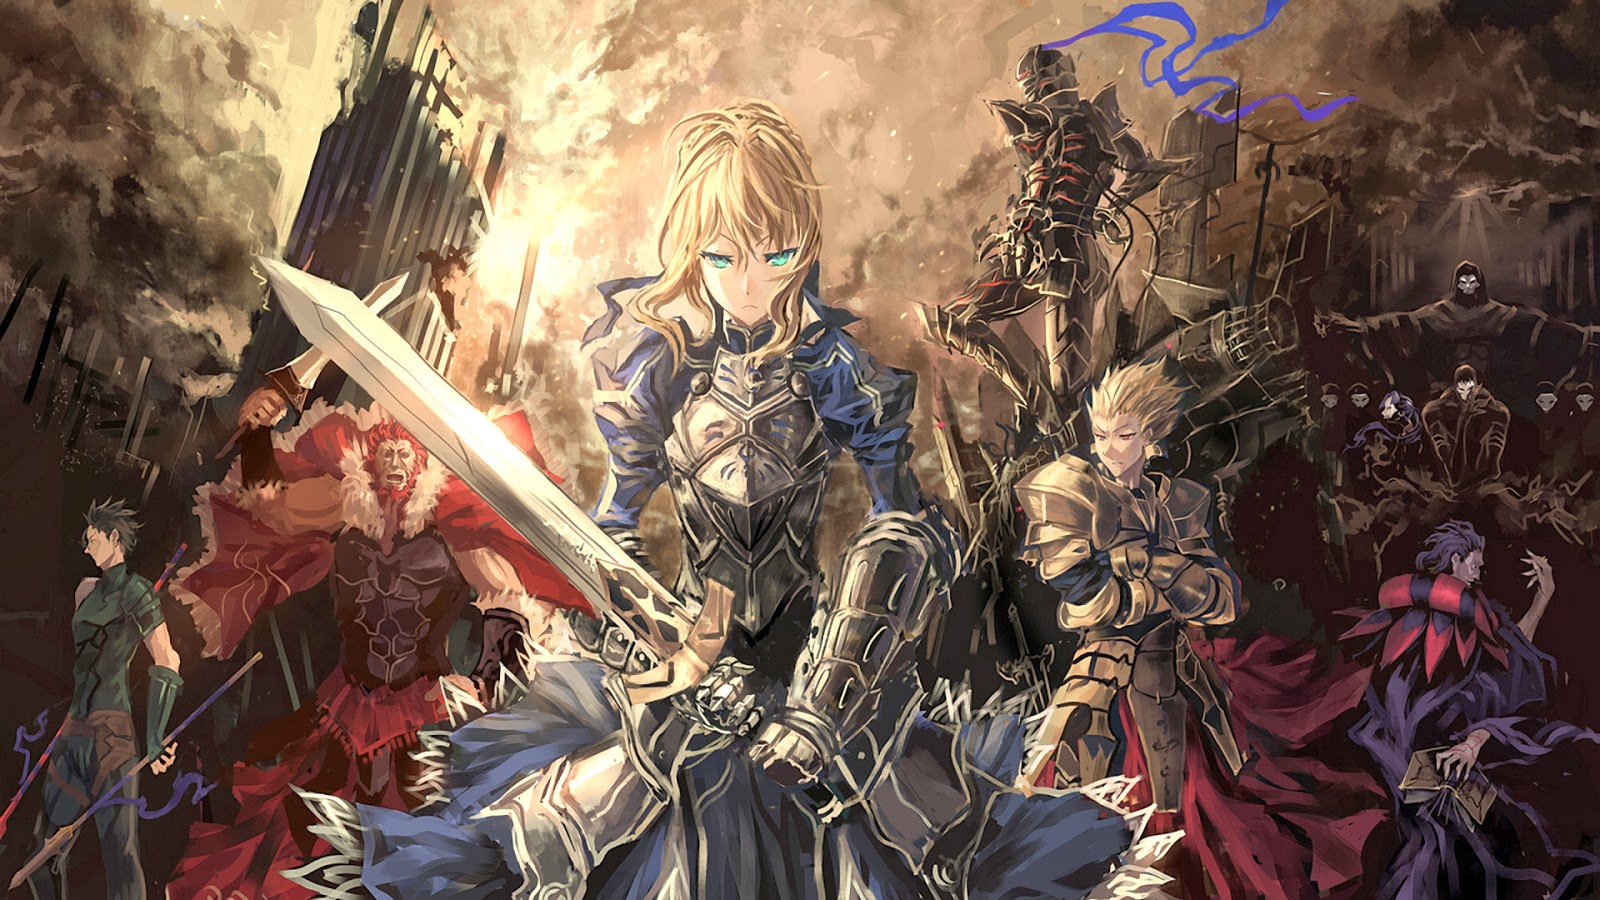 fate stay night wallpaper anime saber gilgames armor knight sword 1600x900